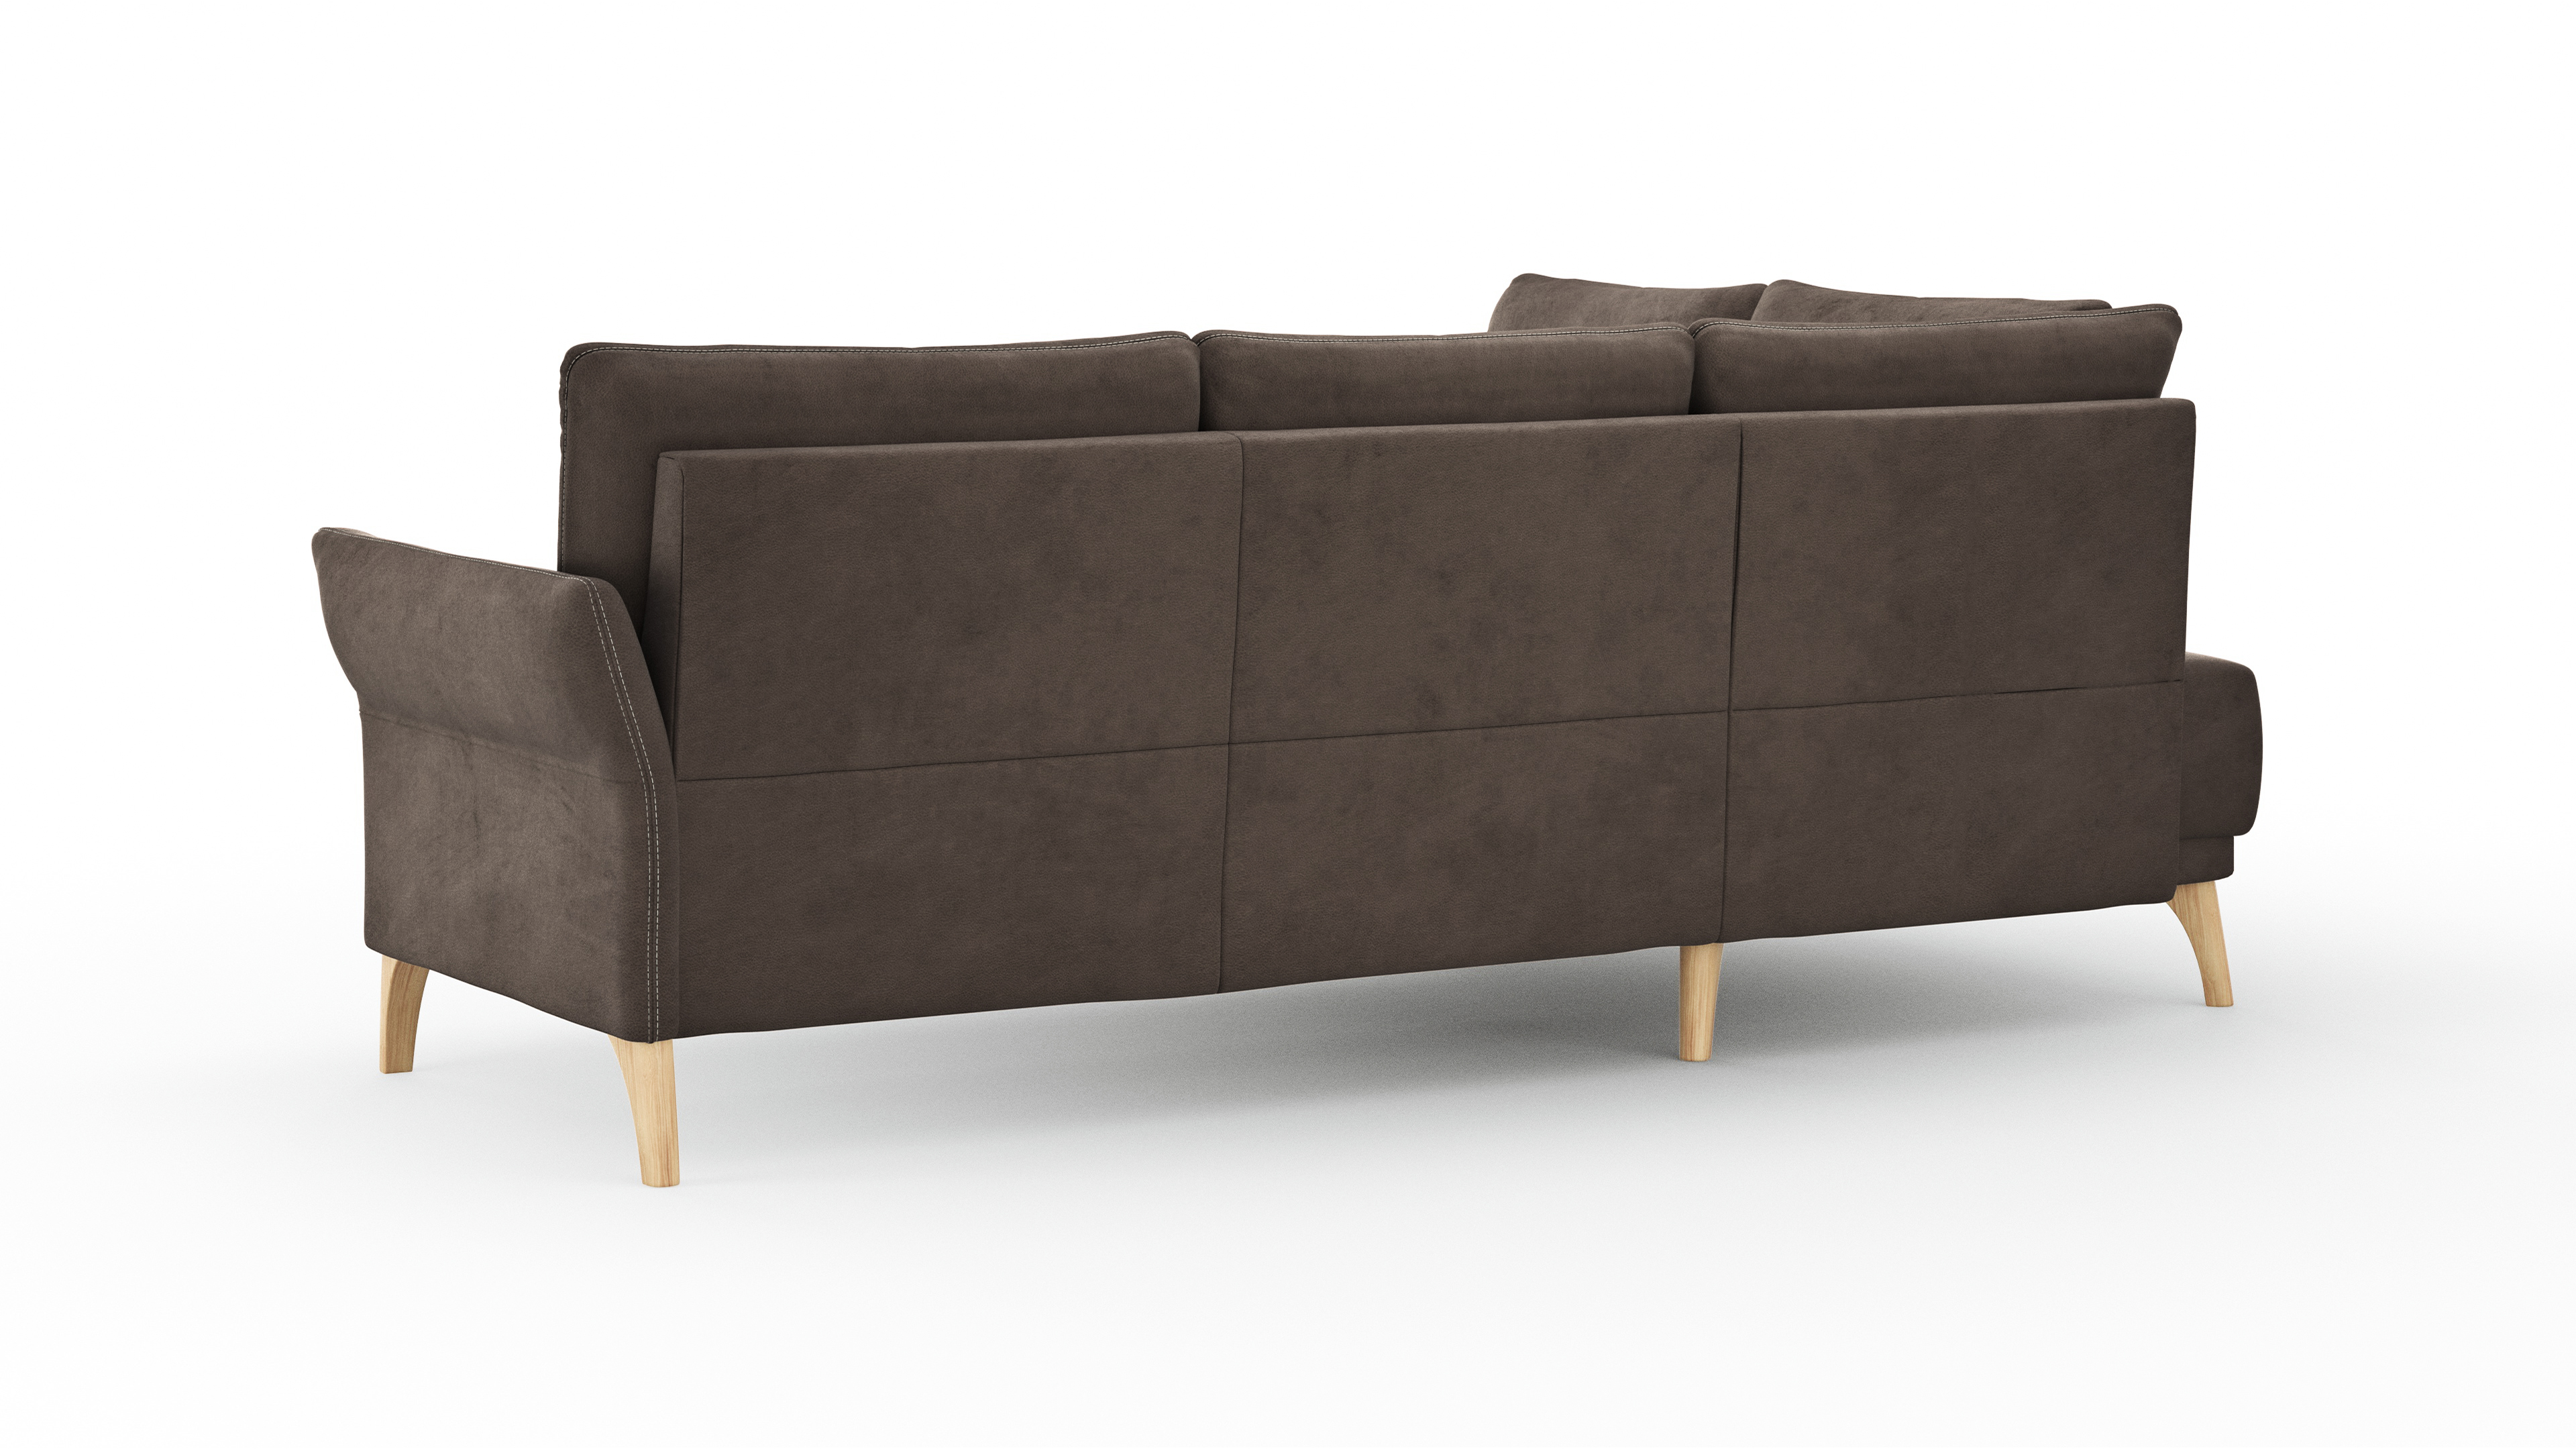 Global Comfort Ecksofa Rosario freisteller 3 102533 | Homepoet